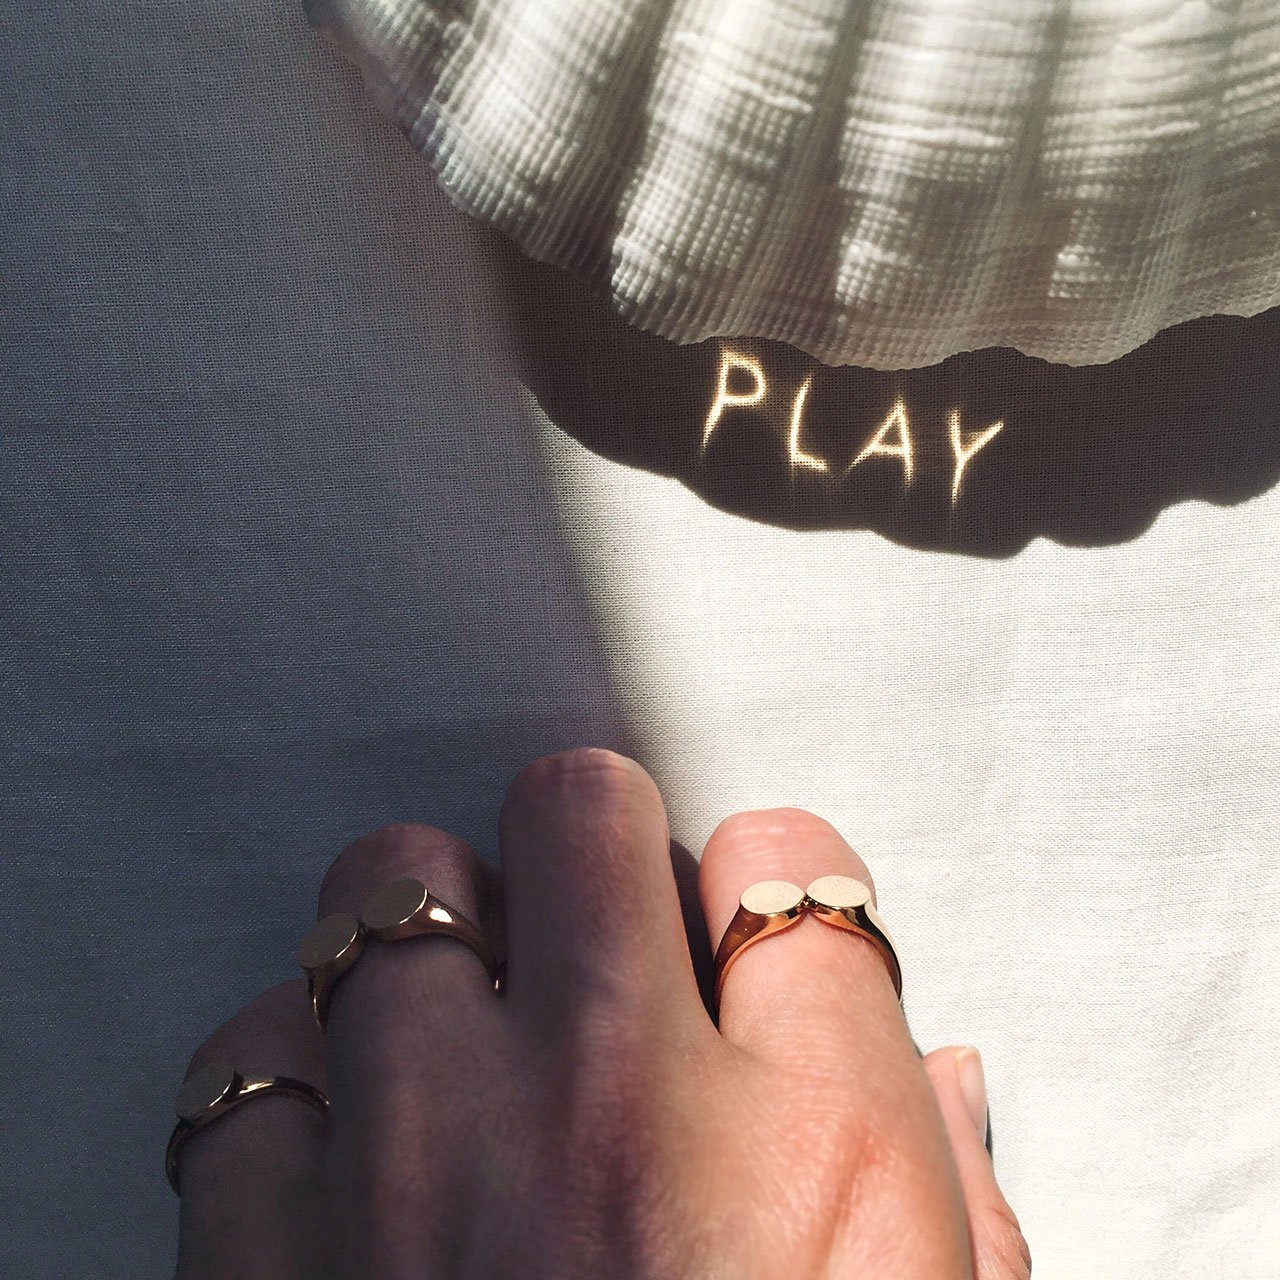 Two Dots Ring PLAY © THE RAYY